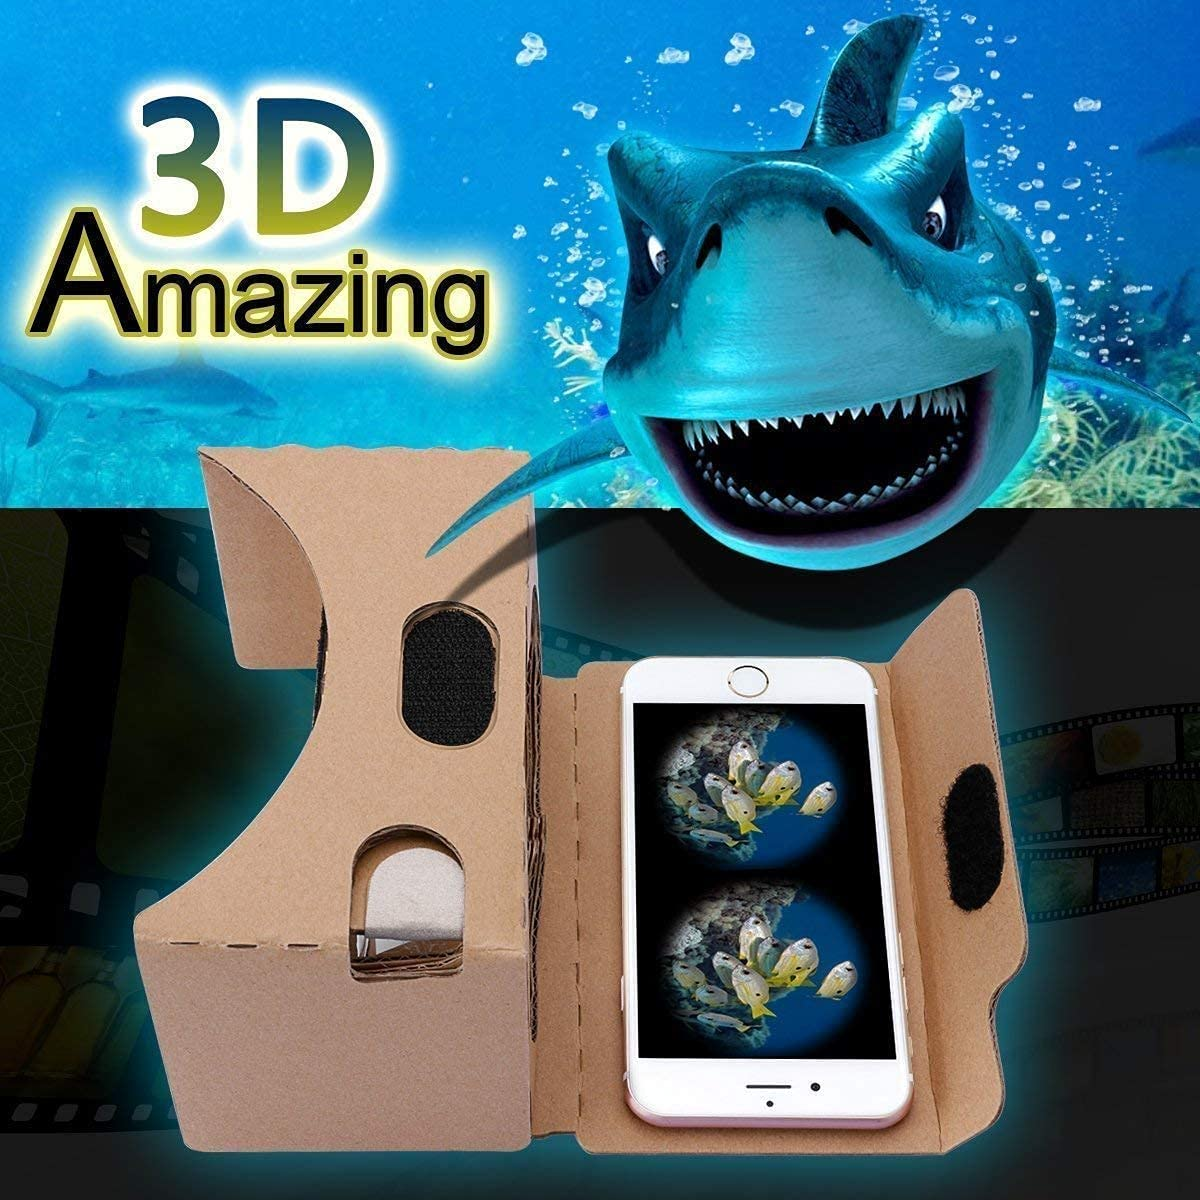 Google Cardboard,VR Headsets 3D Box Virtual Reality Glasses with Big Clear 3D Optical Lens and Comfortable Head Strap for All 3-6 Inch Smartphones (Yellow, 1 Pack)